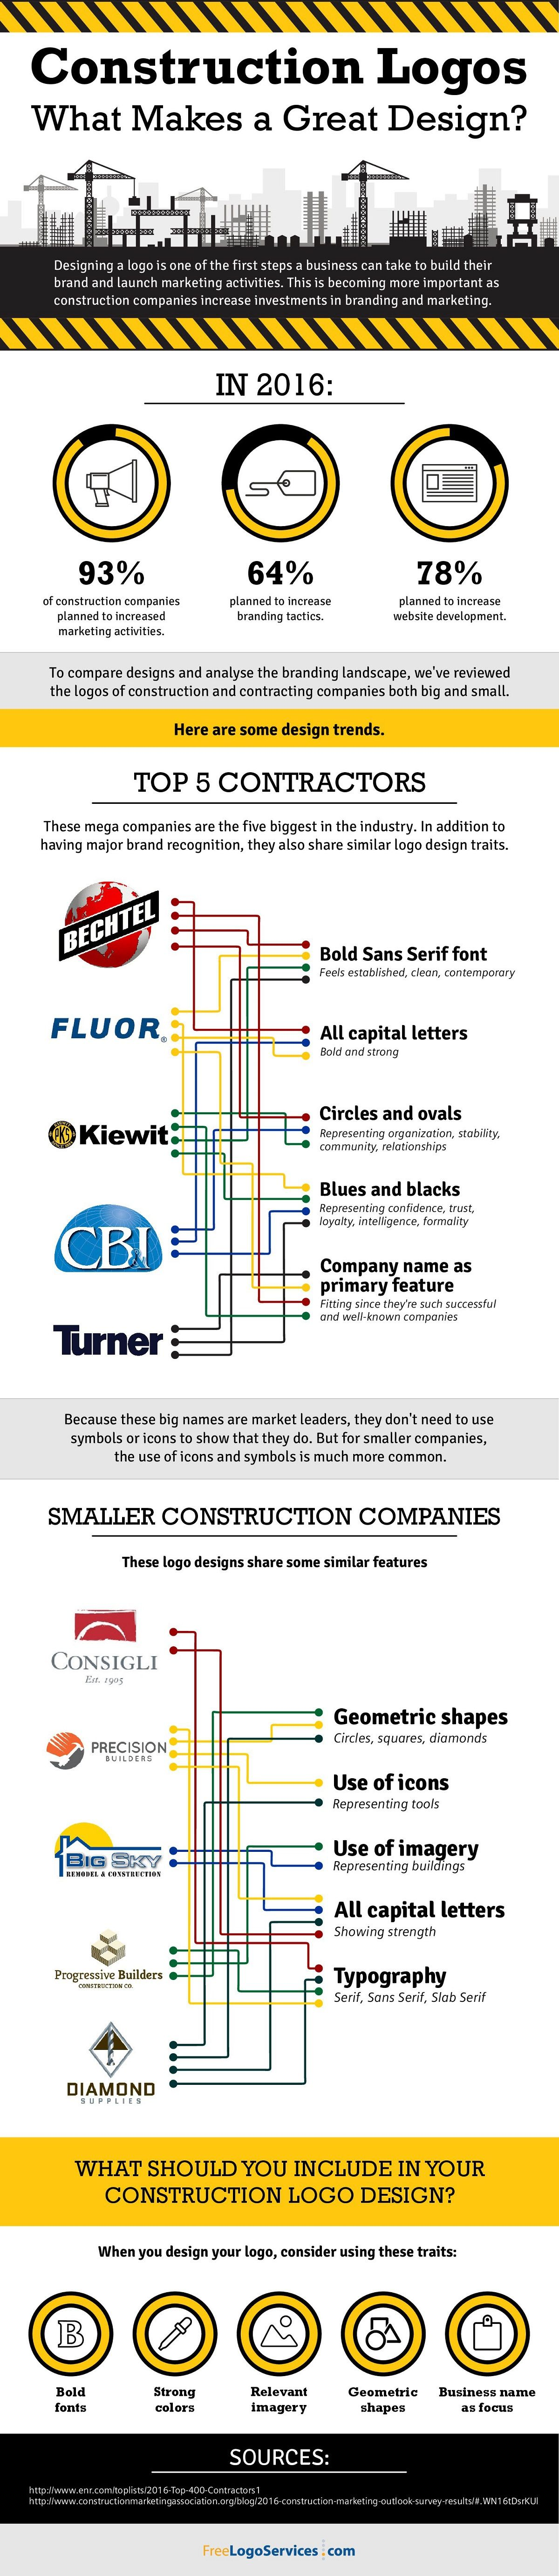 Construction Logos: What Makes a Great Design?